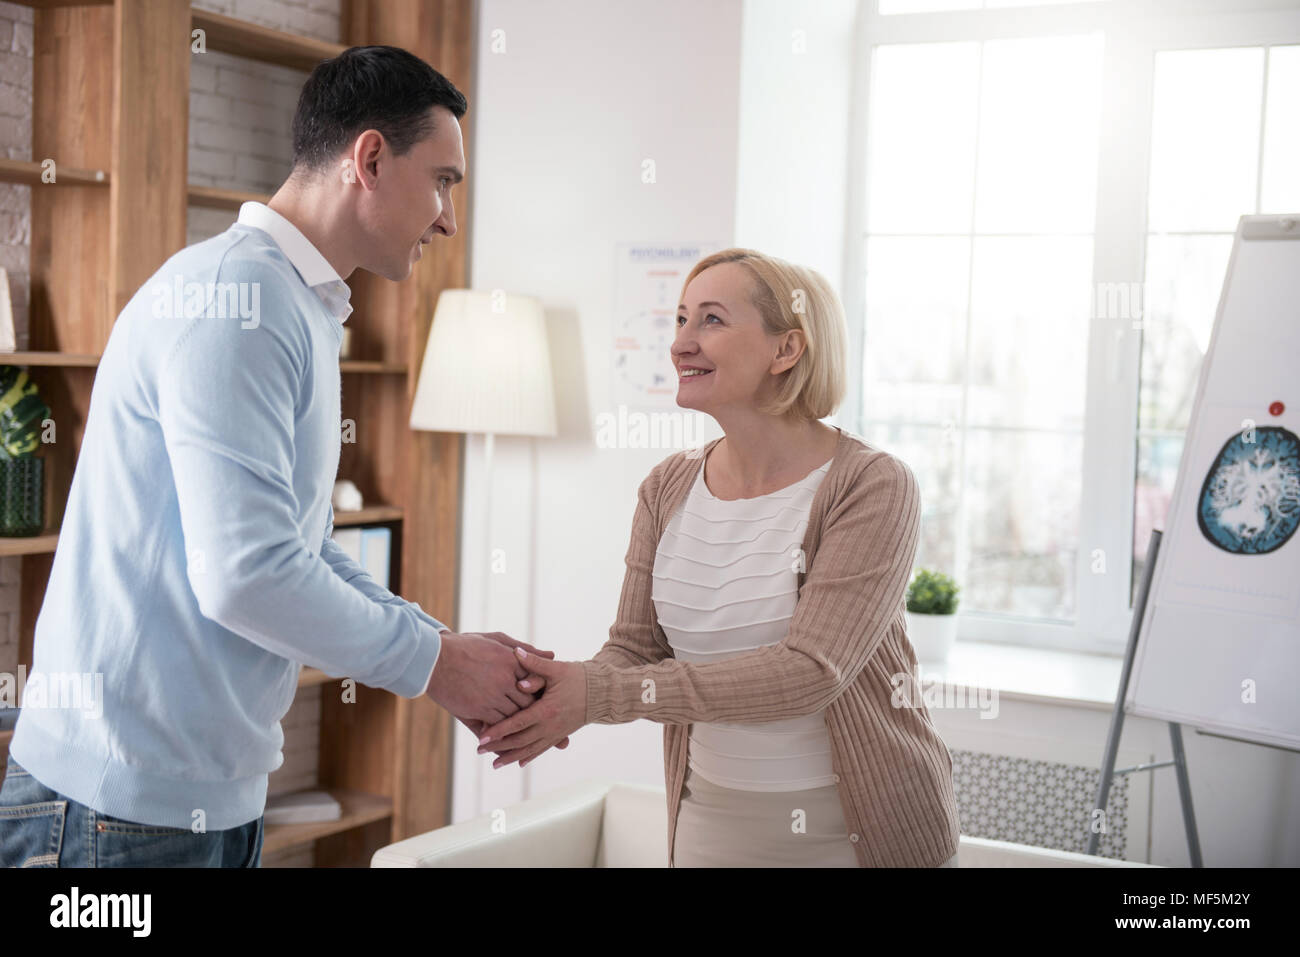 Merry senior woman making acquaintance with man - Stock Image